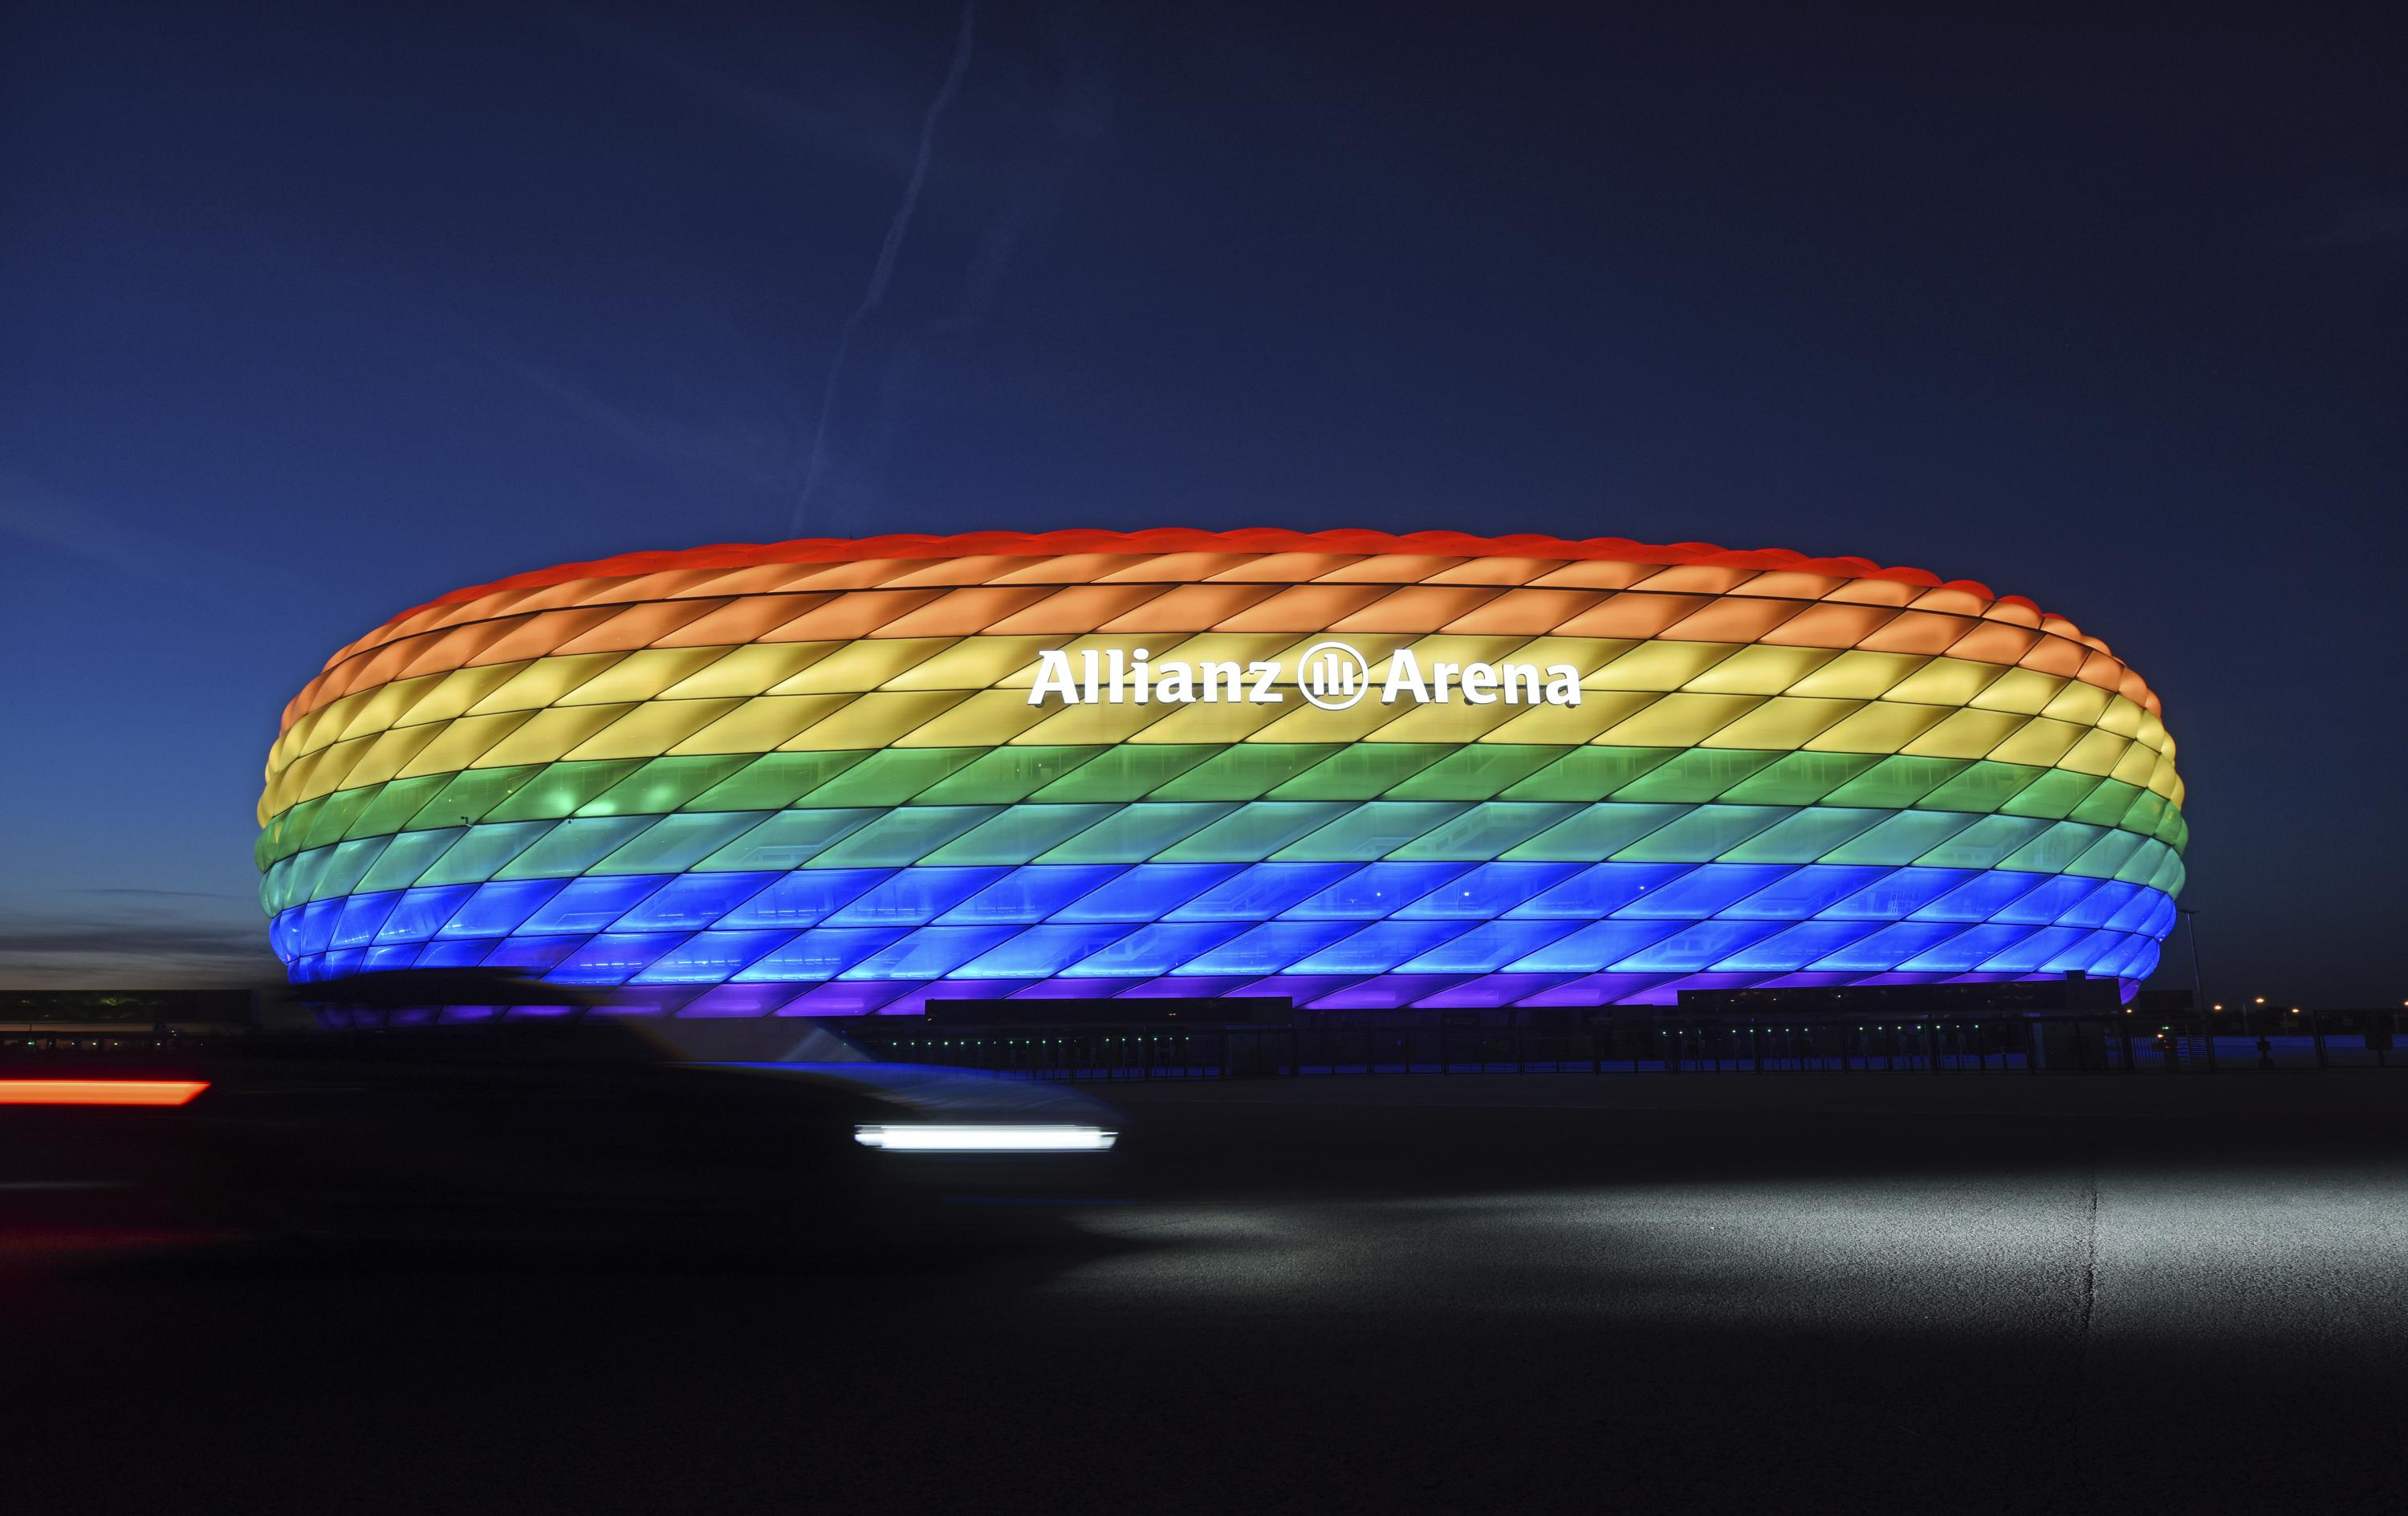 UEFA declines Munich application for rainbow-colored stadium - The Associated Press